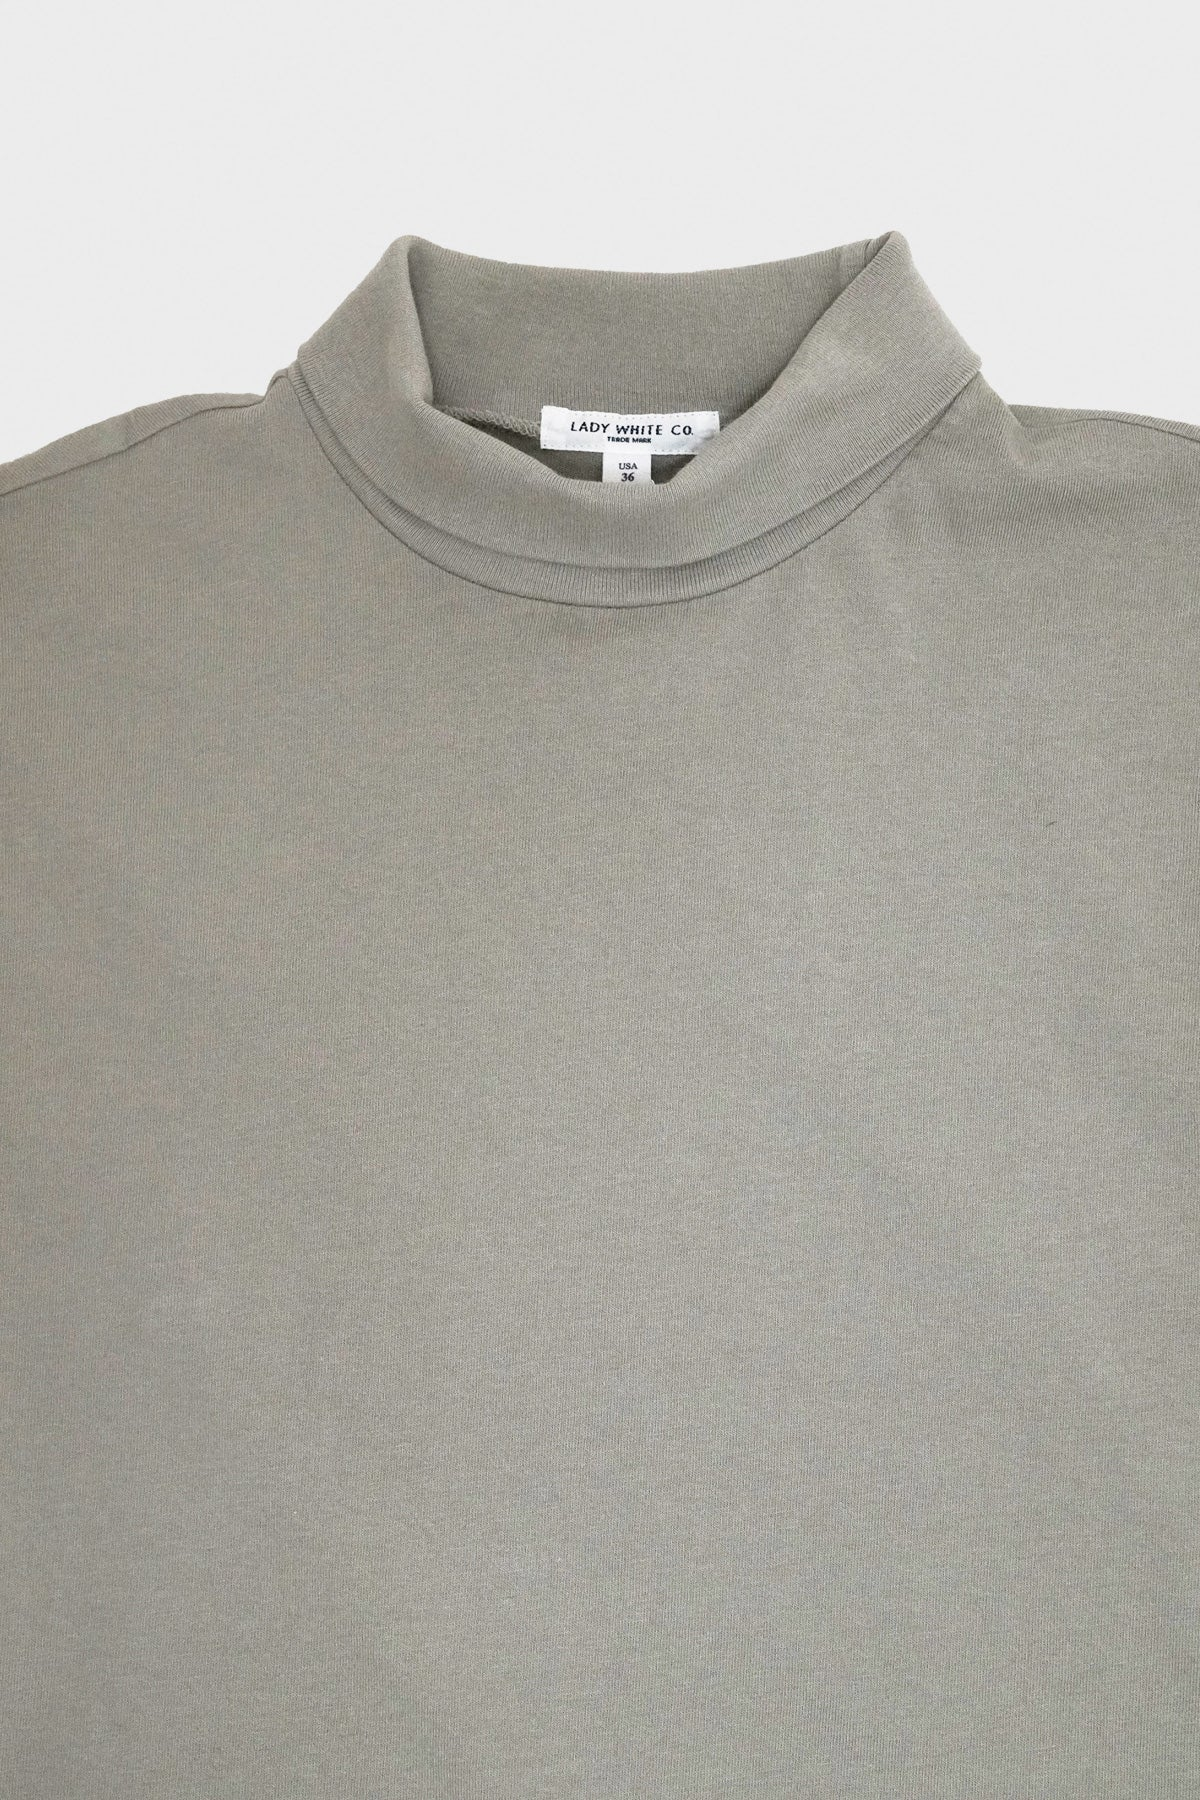 Lady White Co. - Jersey Turtleneck - Taupe Fog - Canoe Club